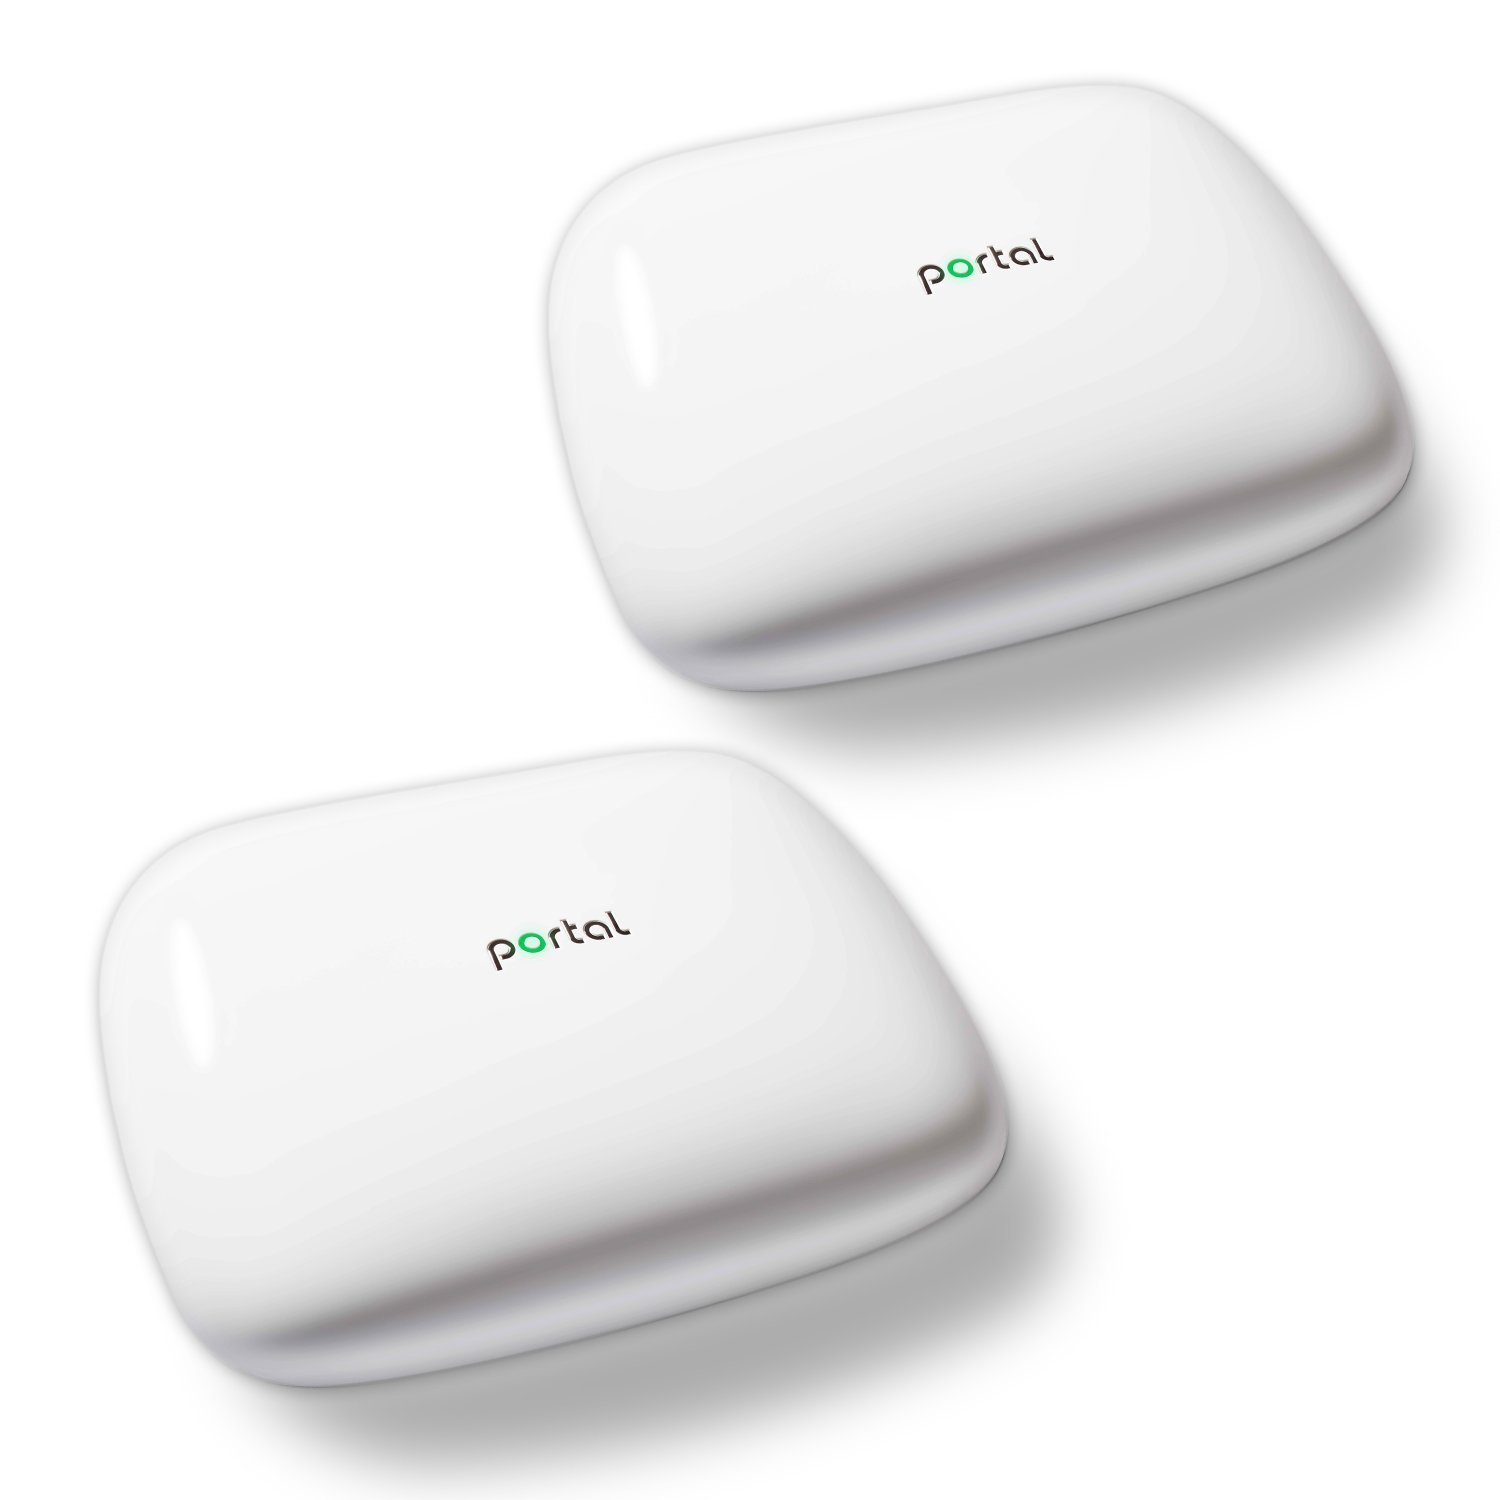 Portal mesh wifi system (2-pack) - Reliable and affordable coverage for homes up to 6,000 sq. ft., Replaces your wireless router and range extender, Gigabit speed, Easy setup and app (AC2400)